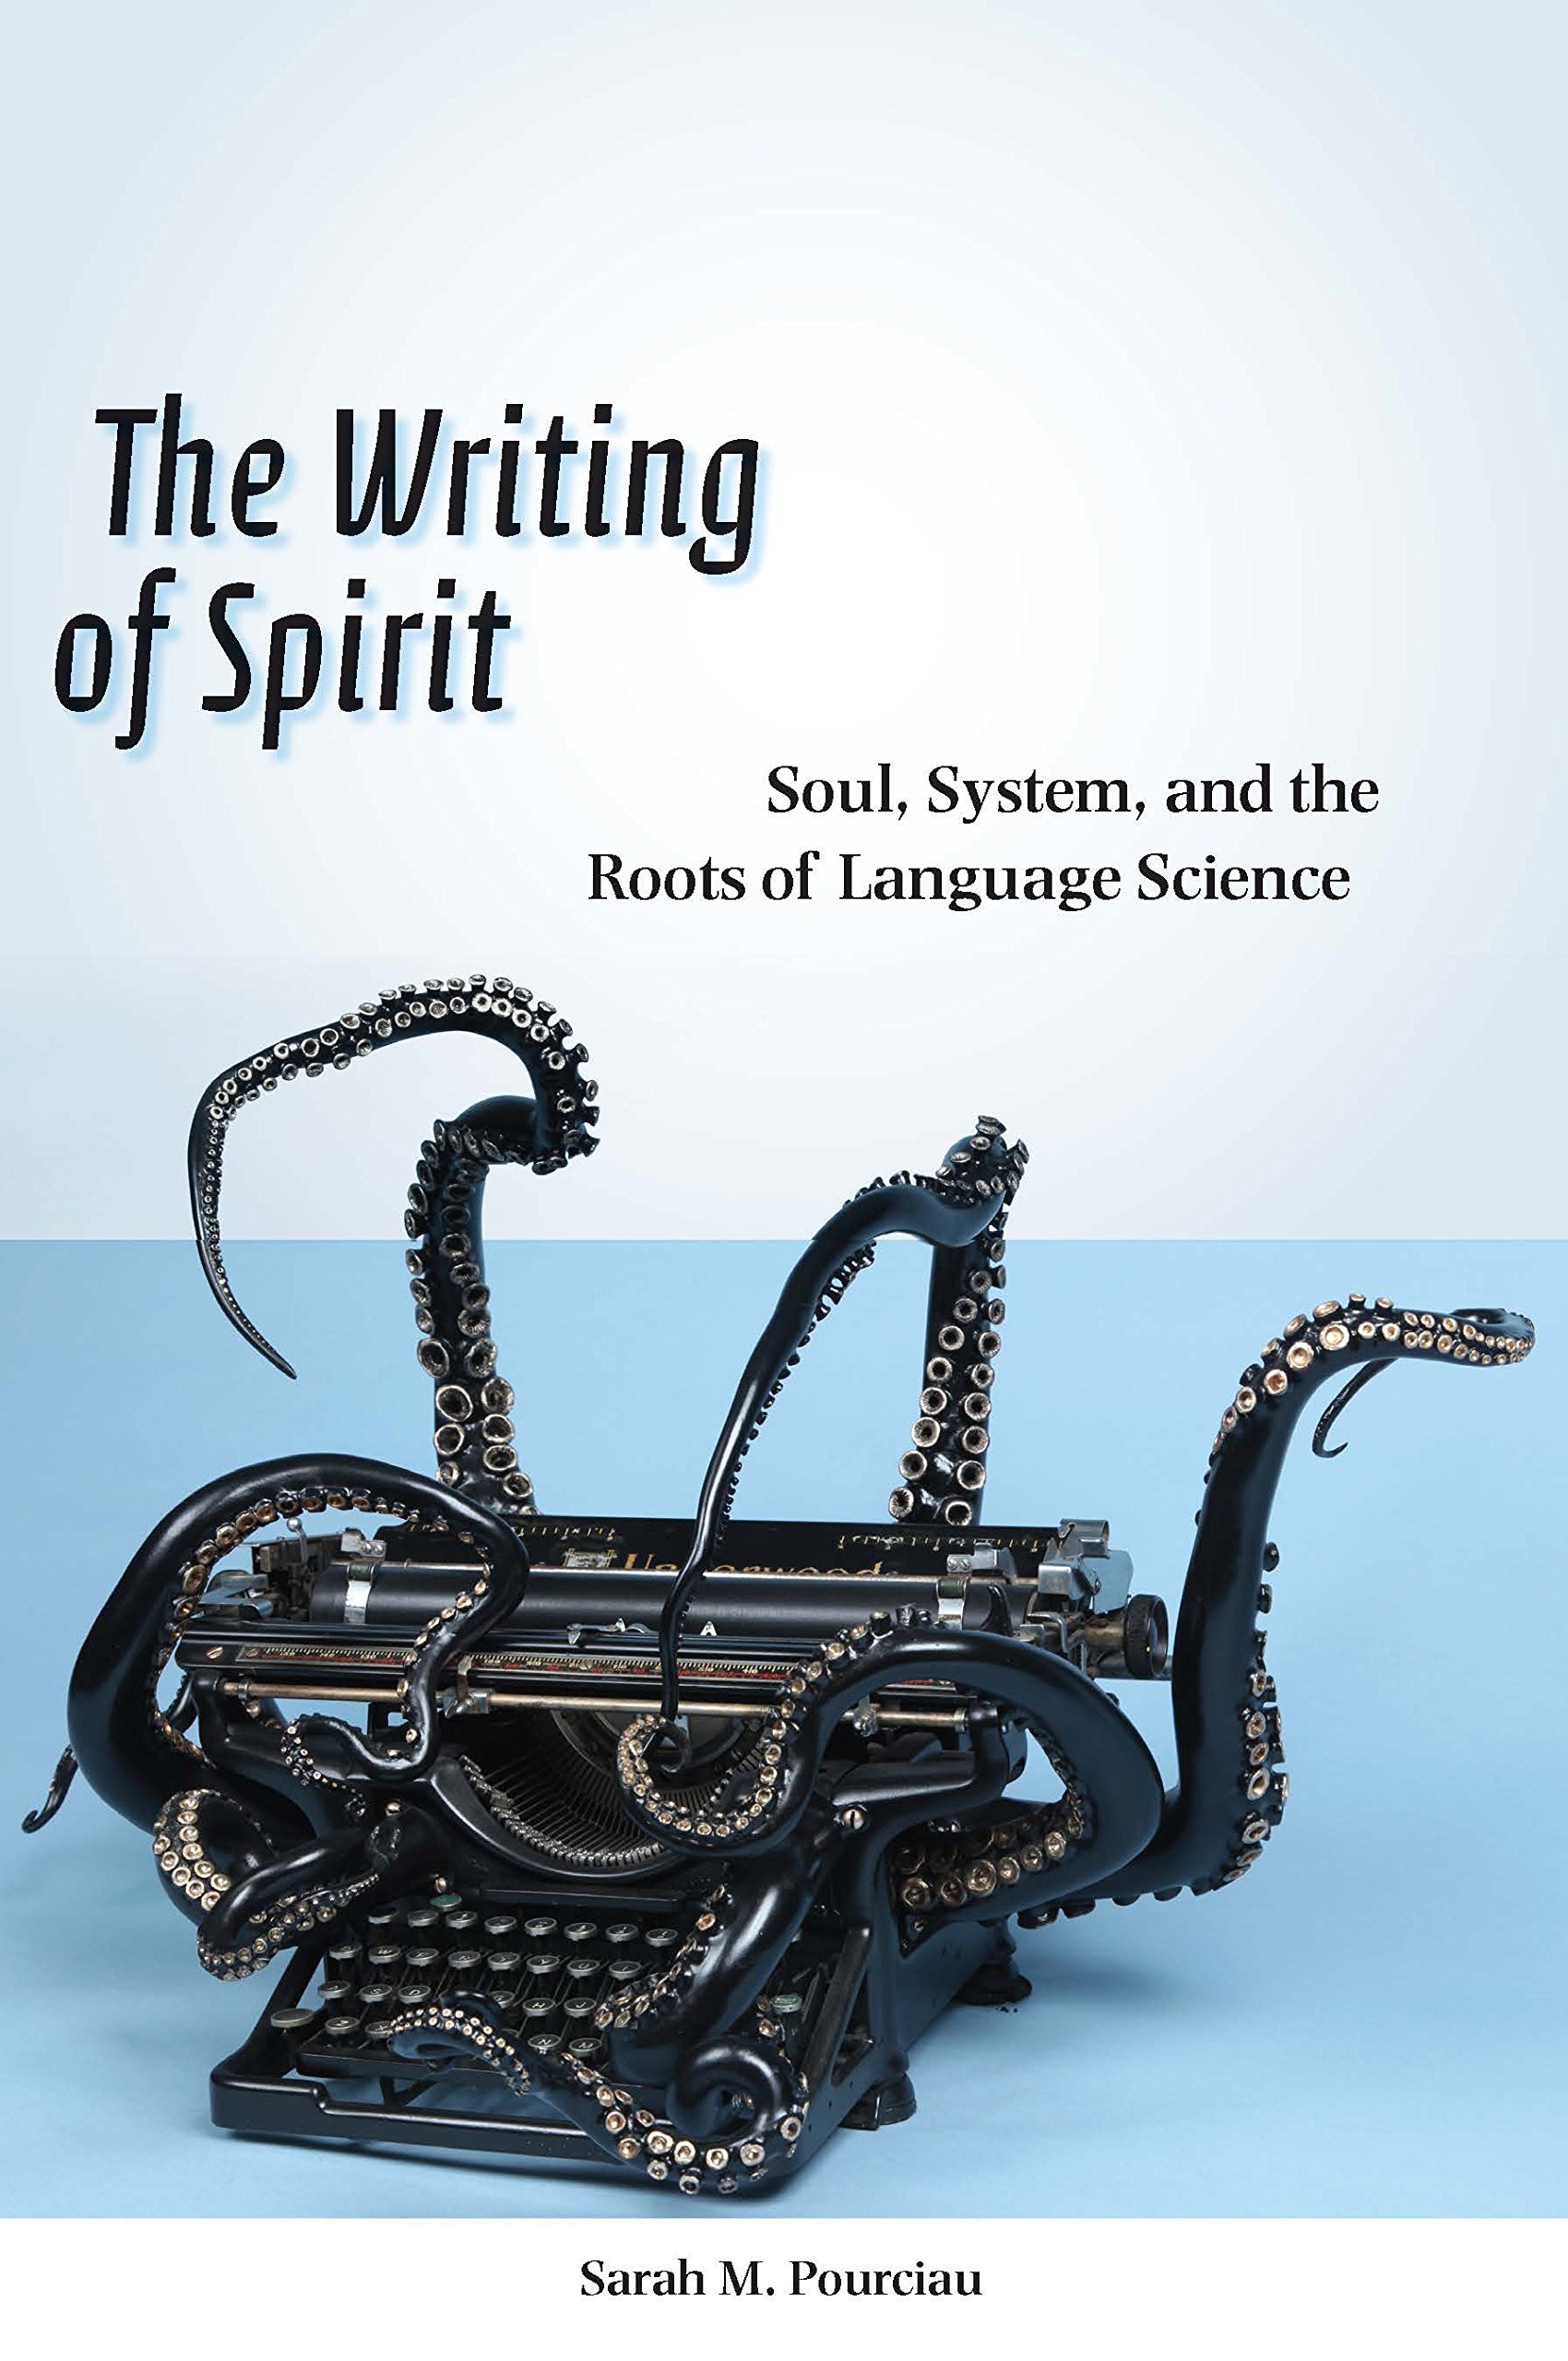 The Writing of Spirit: Soul, System, and the Roots of Language Science